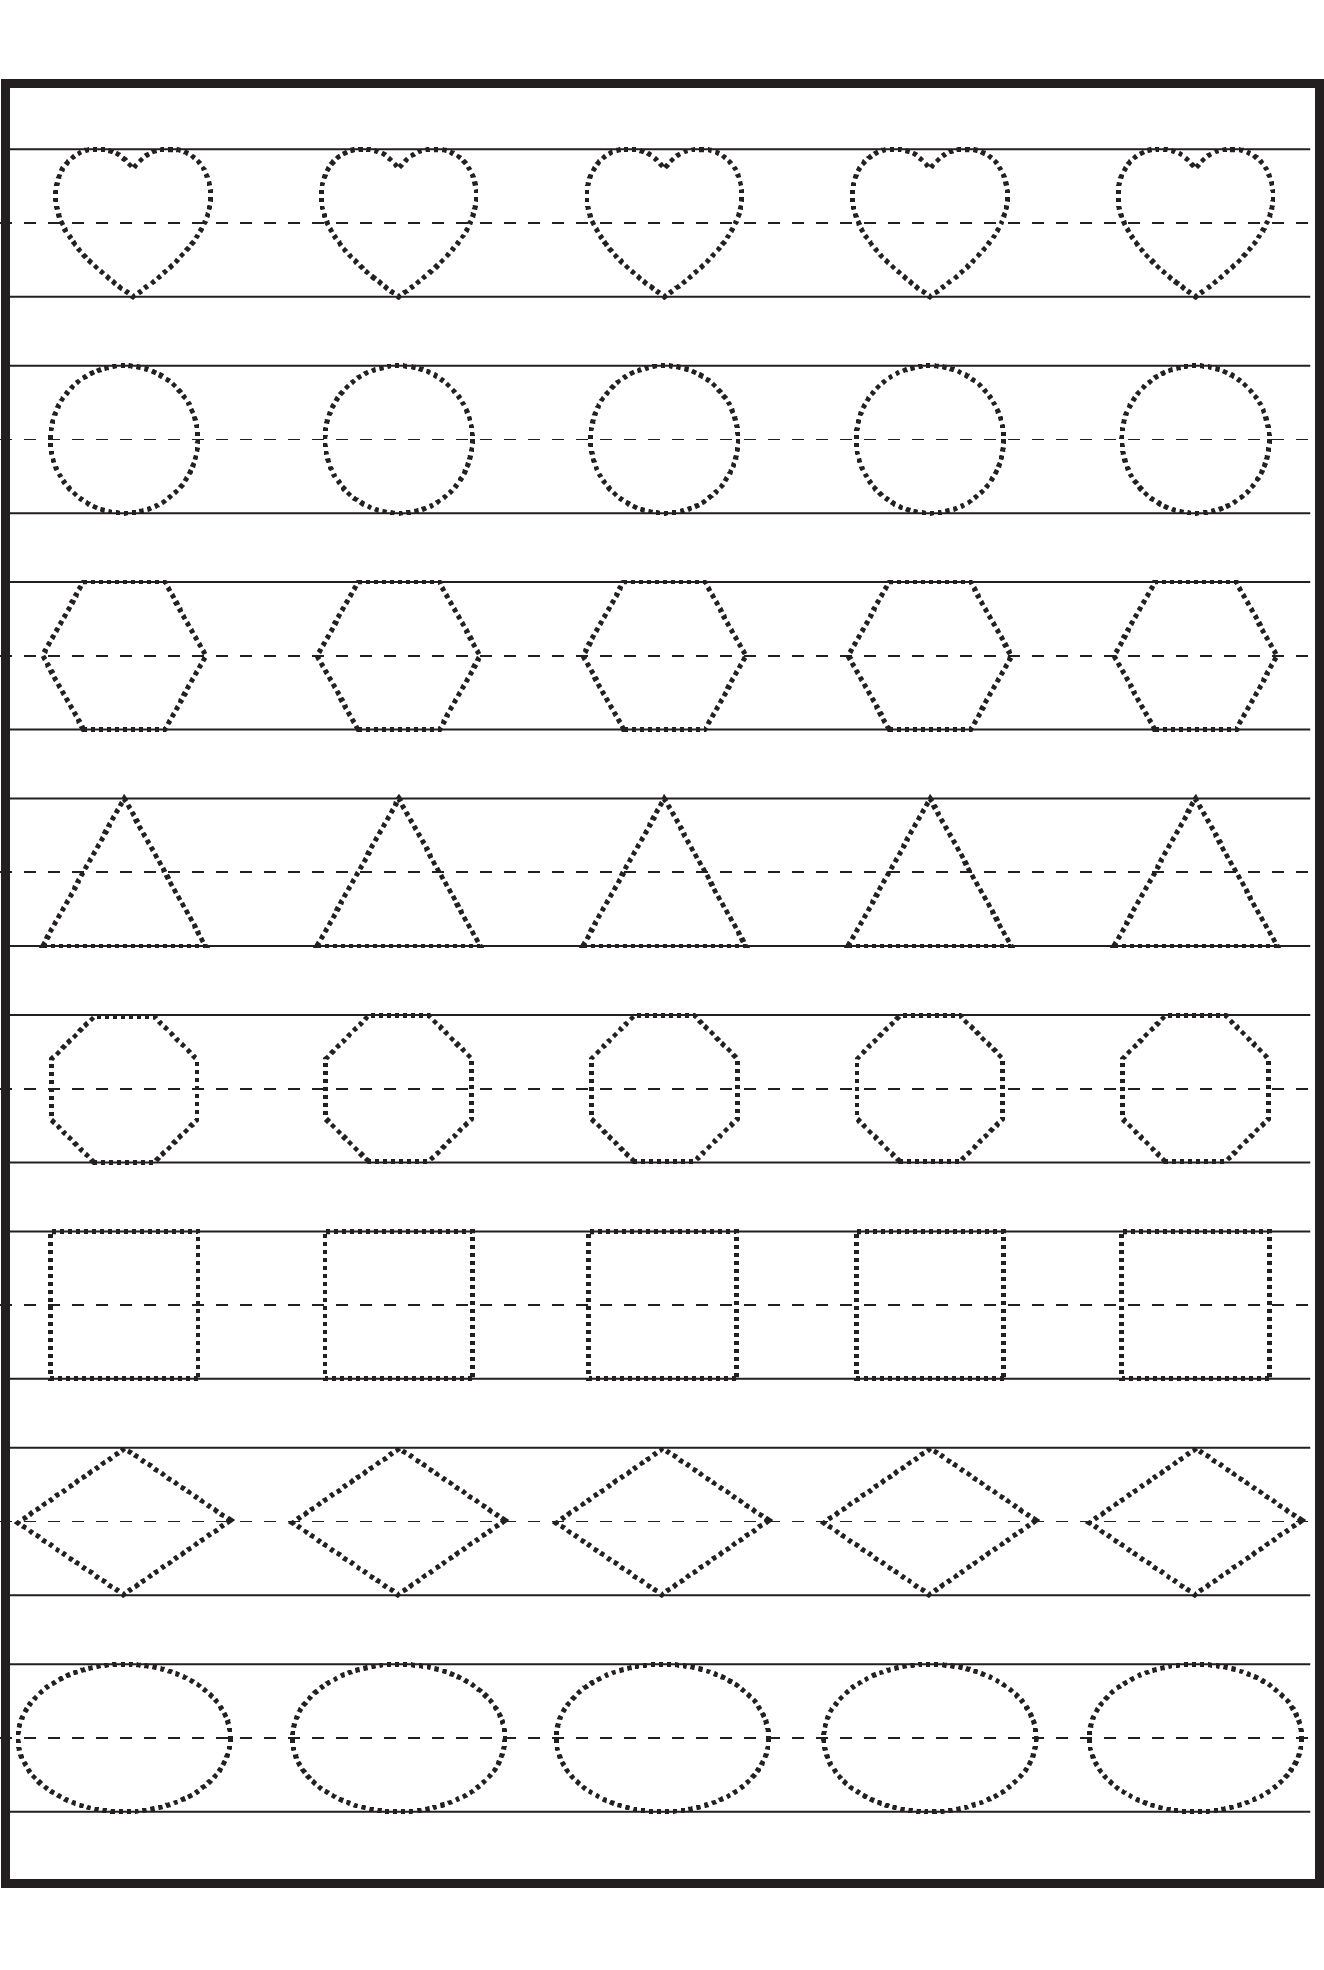 3 Year Old Tracing Worksheets